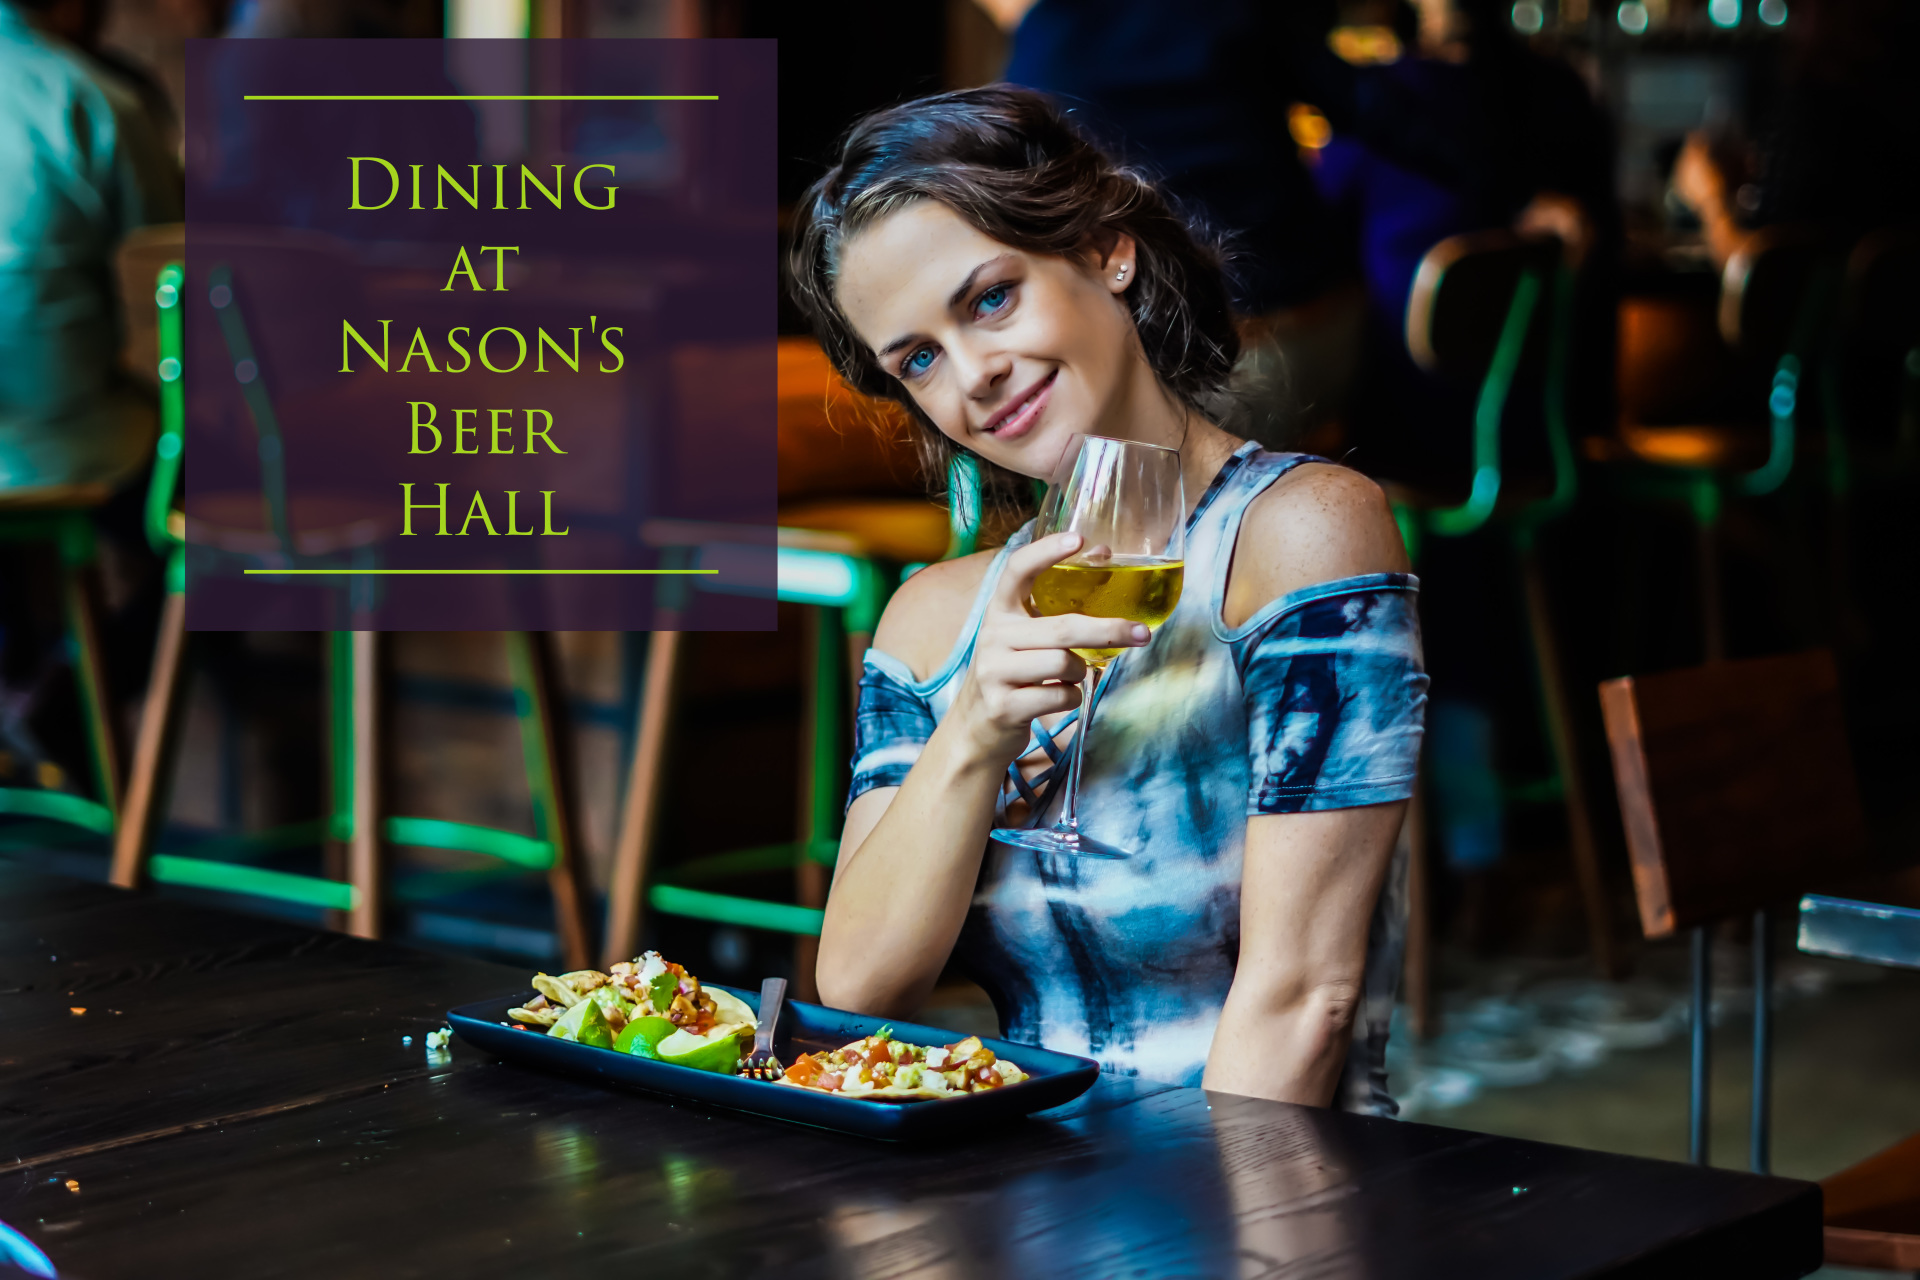 Dining at Nason's Beer Hall, CA